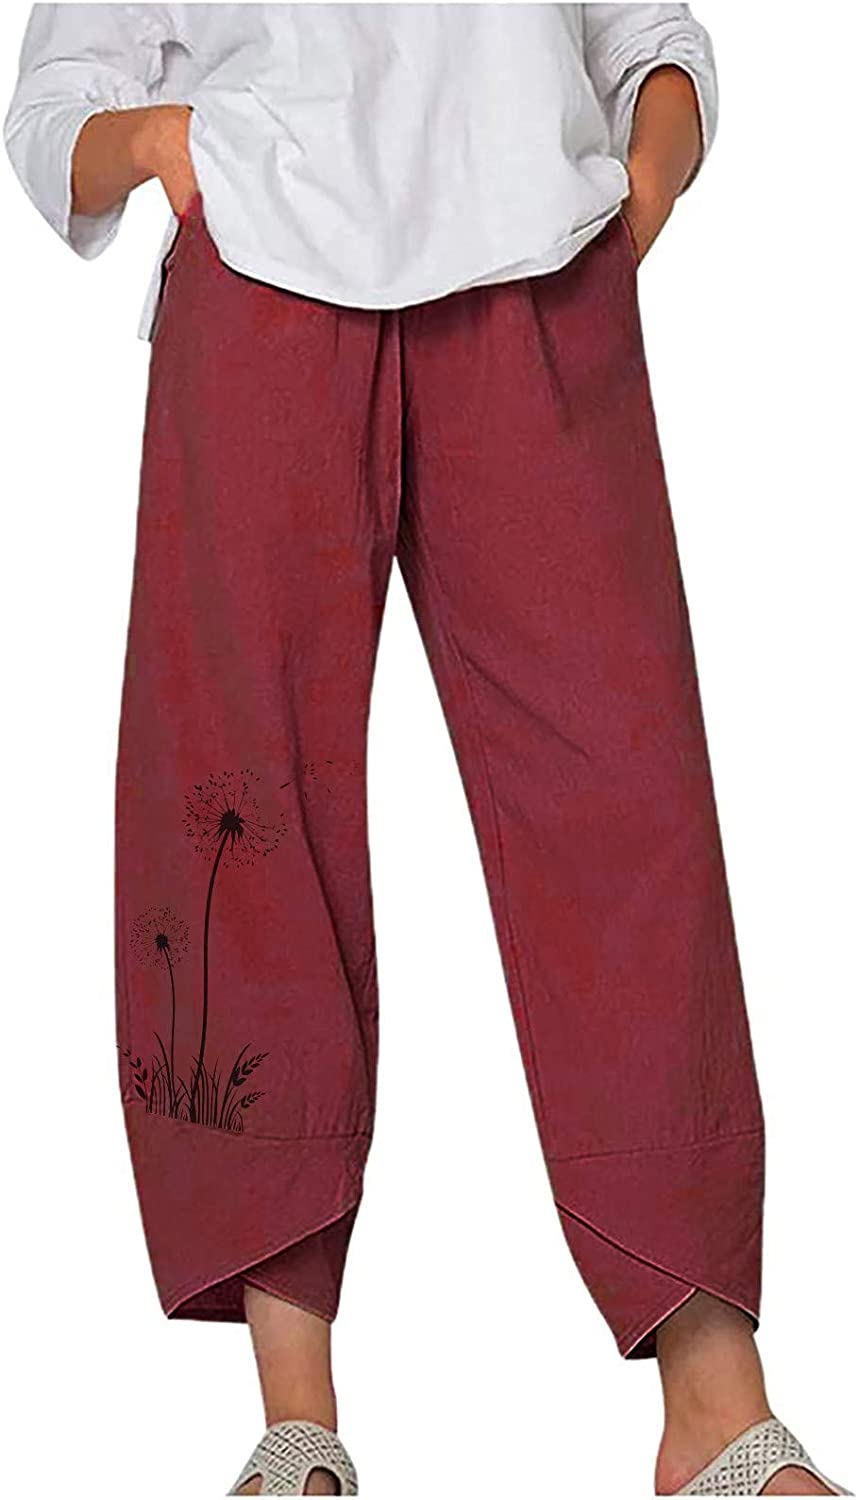 Linen Pants for Women, Summer Wide Leg Solid Color Pants Casual Loose Embroidered Trousers Cropped Pants